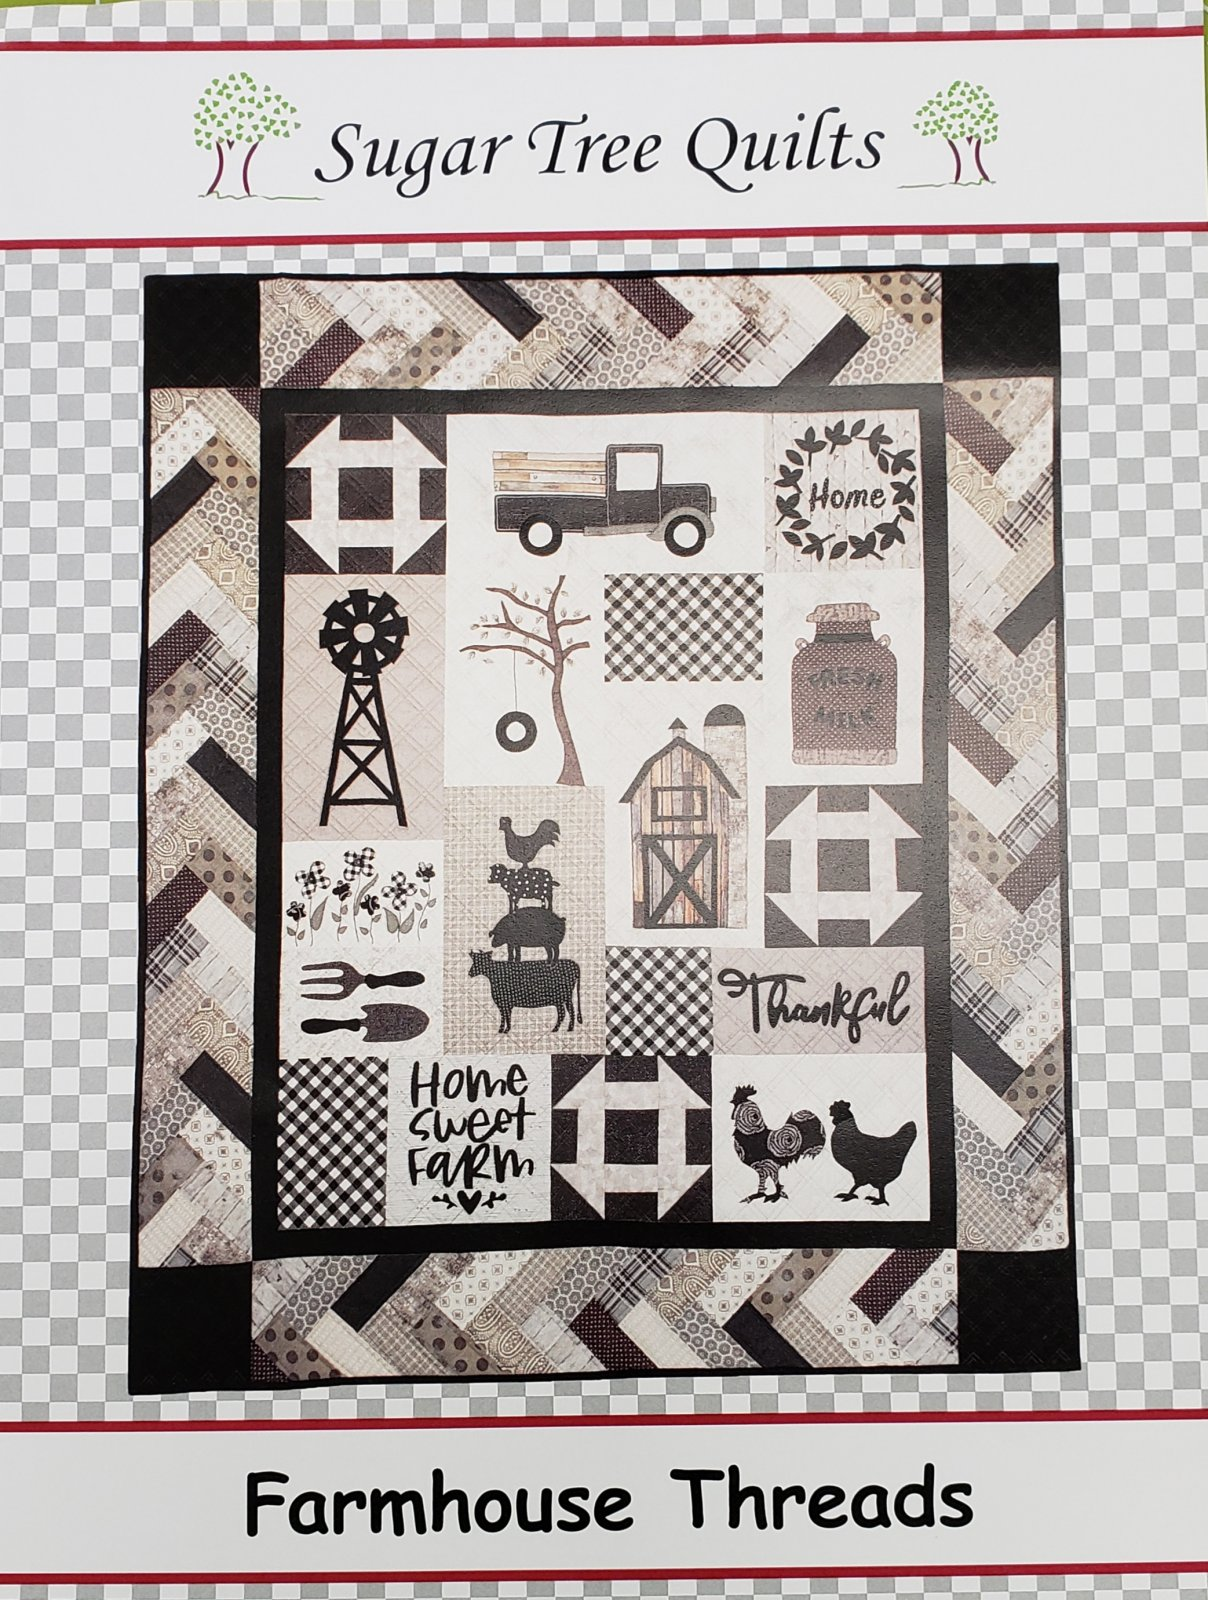 Farmhouse Threads kit from Sugar Tree Quilts